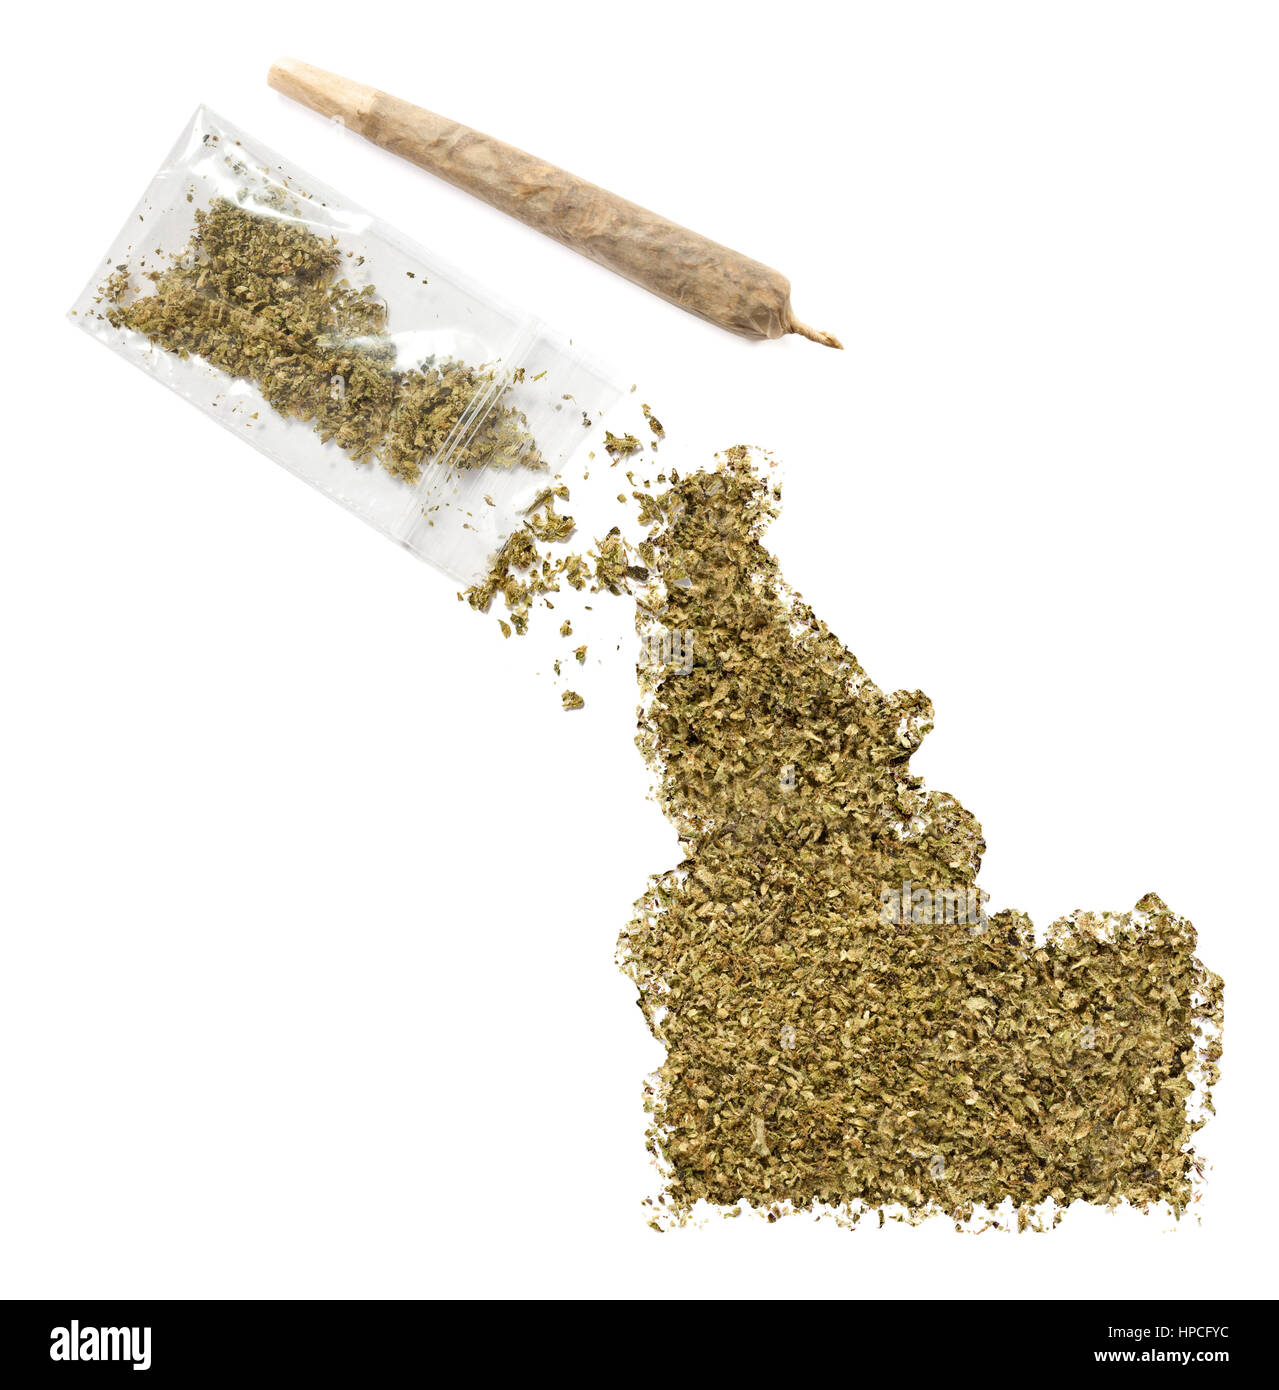 Grinded weed shaped as Idaho and a joint.(series) - Stock Image